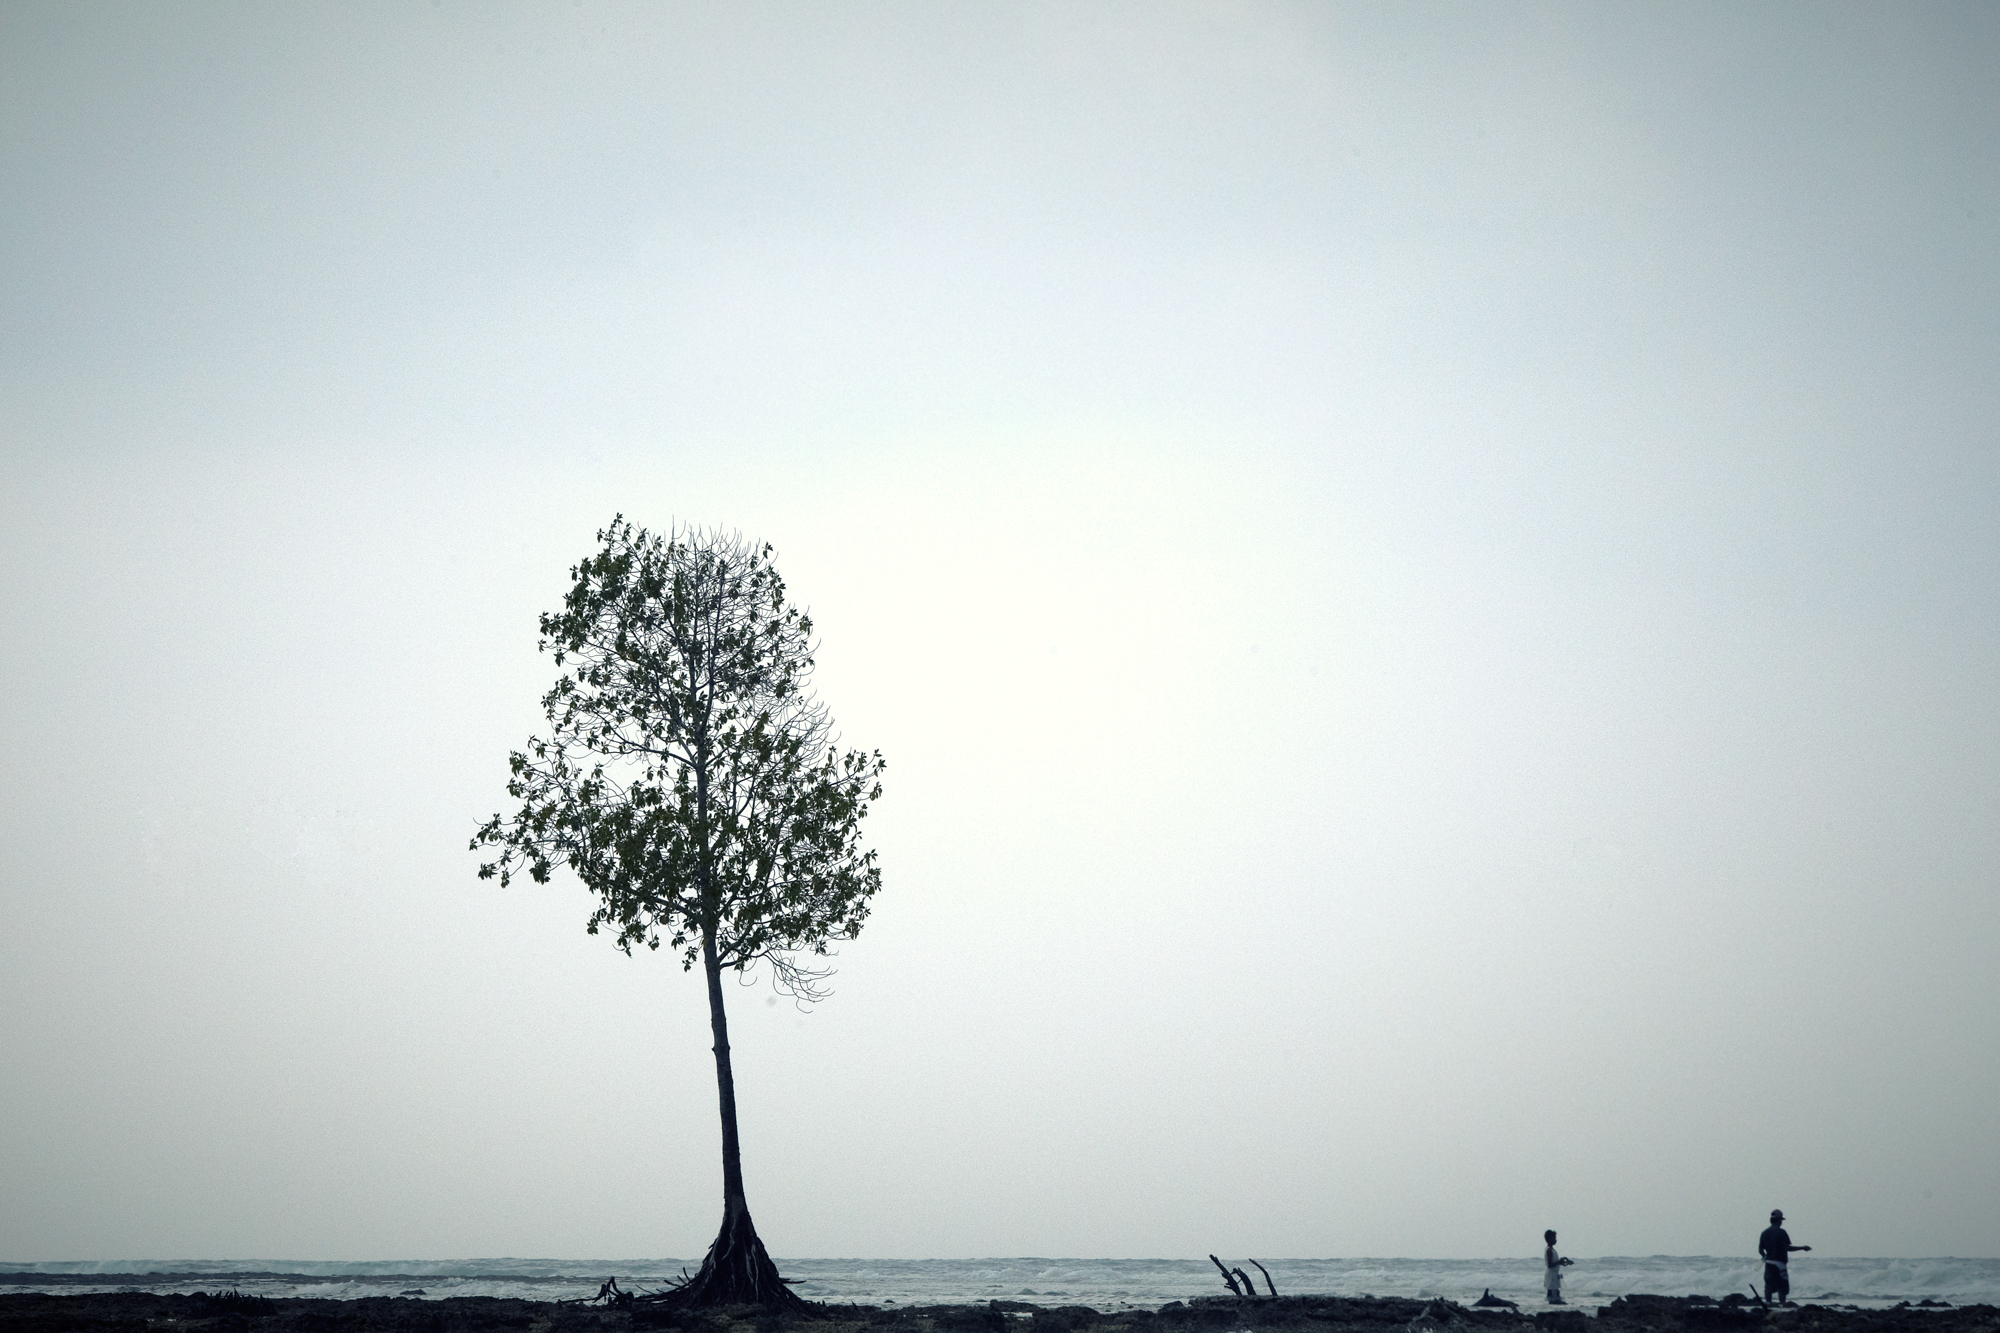 Lone Tree Aquabumps a91g3043